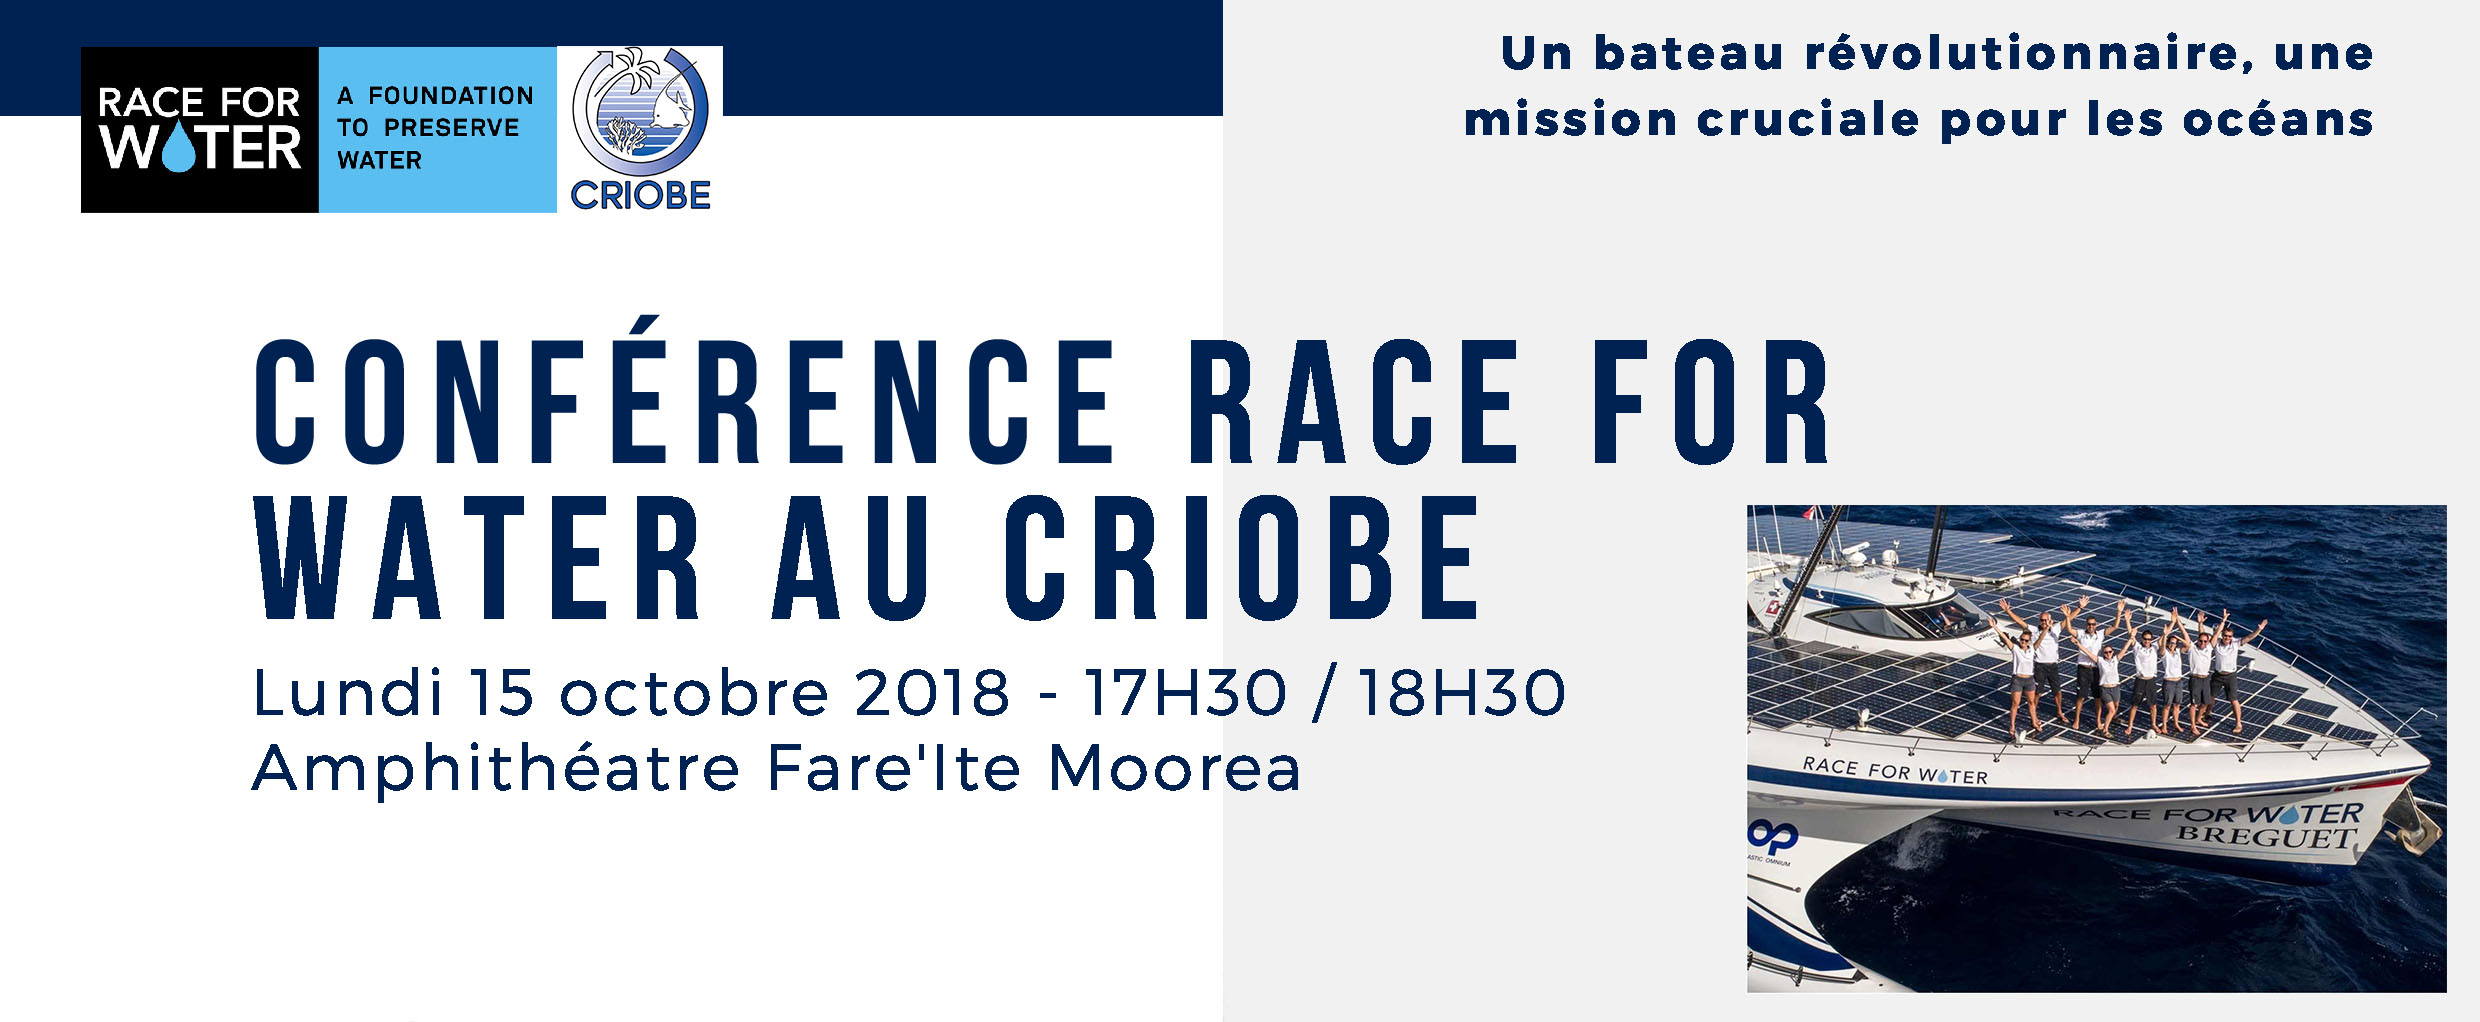 Conférence au criobe race for water